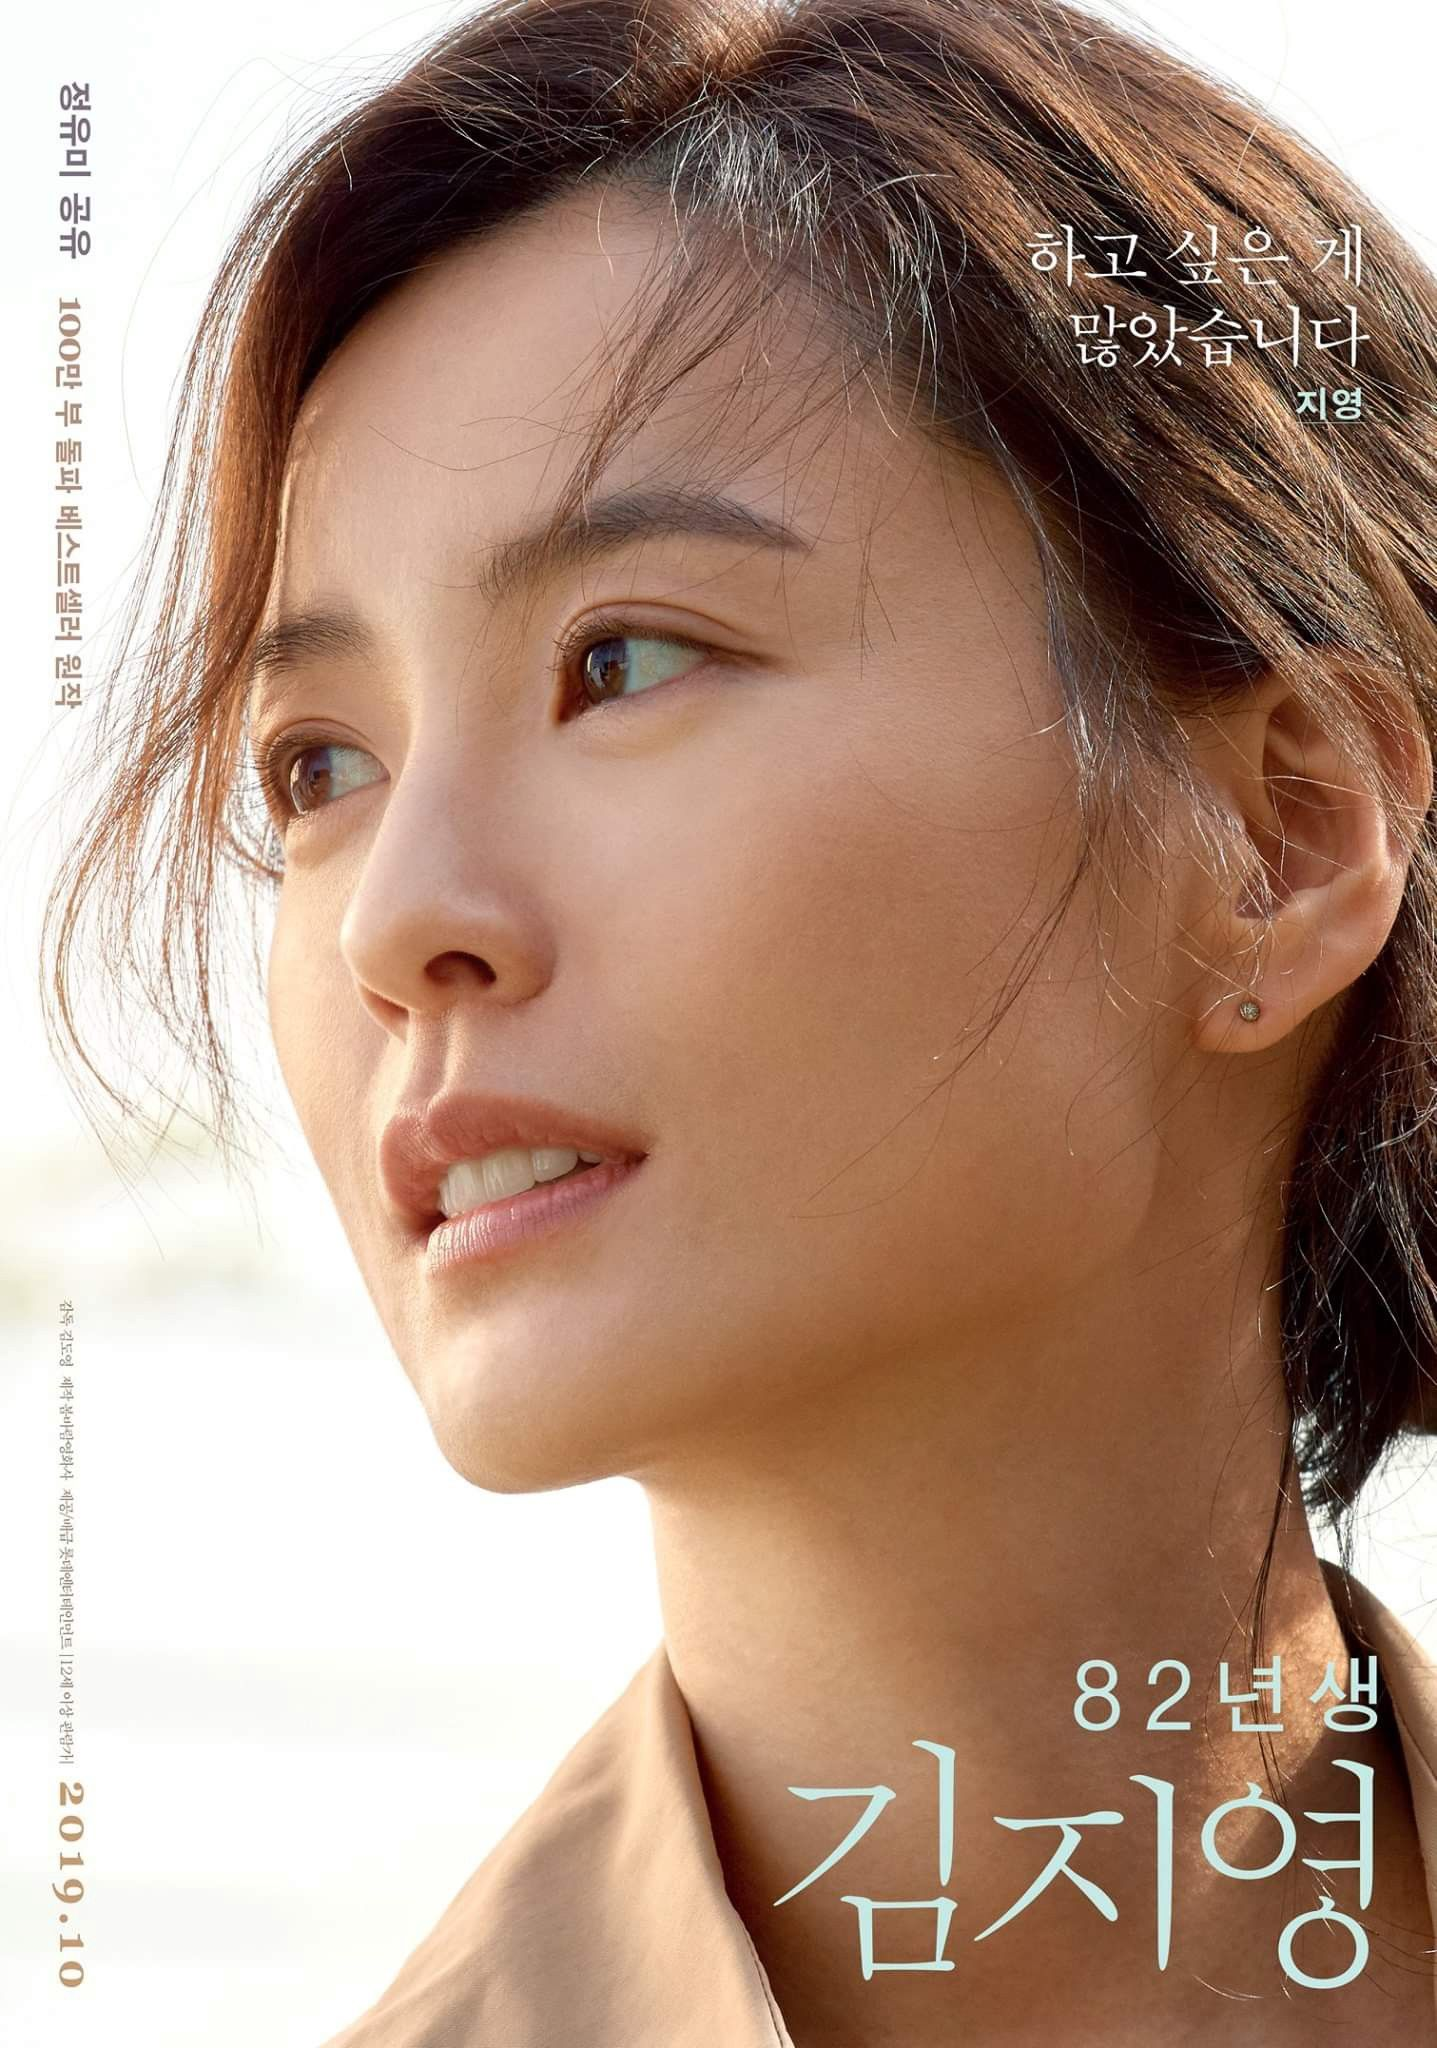 planamag.com: 'Kim Ji-young, Born 1982' Has Important Things To Say About The Everywoman